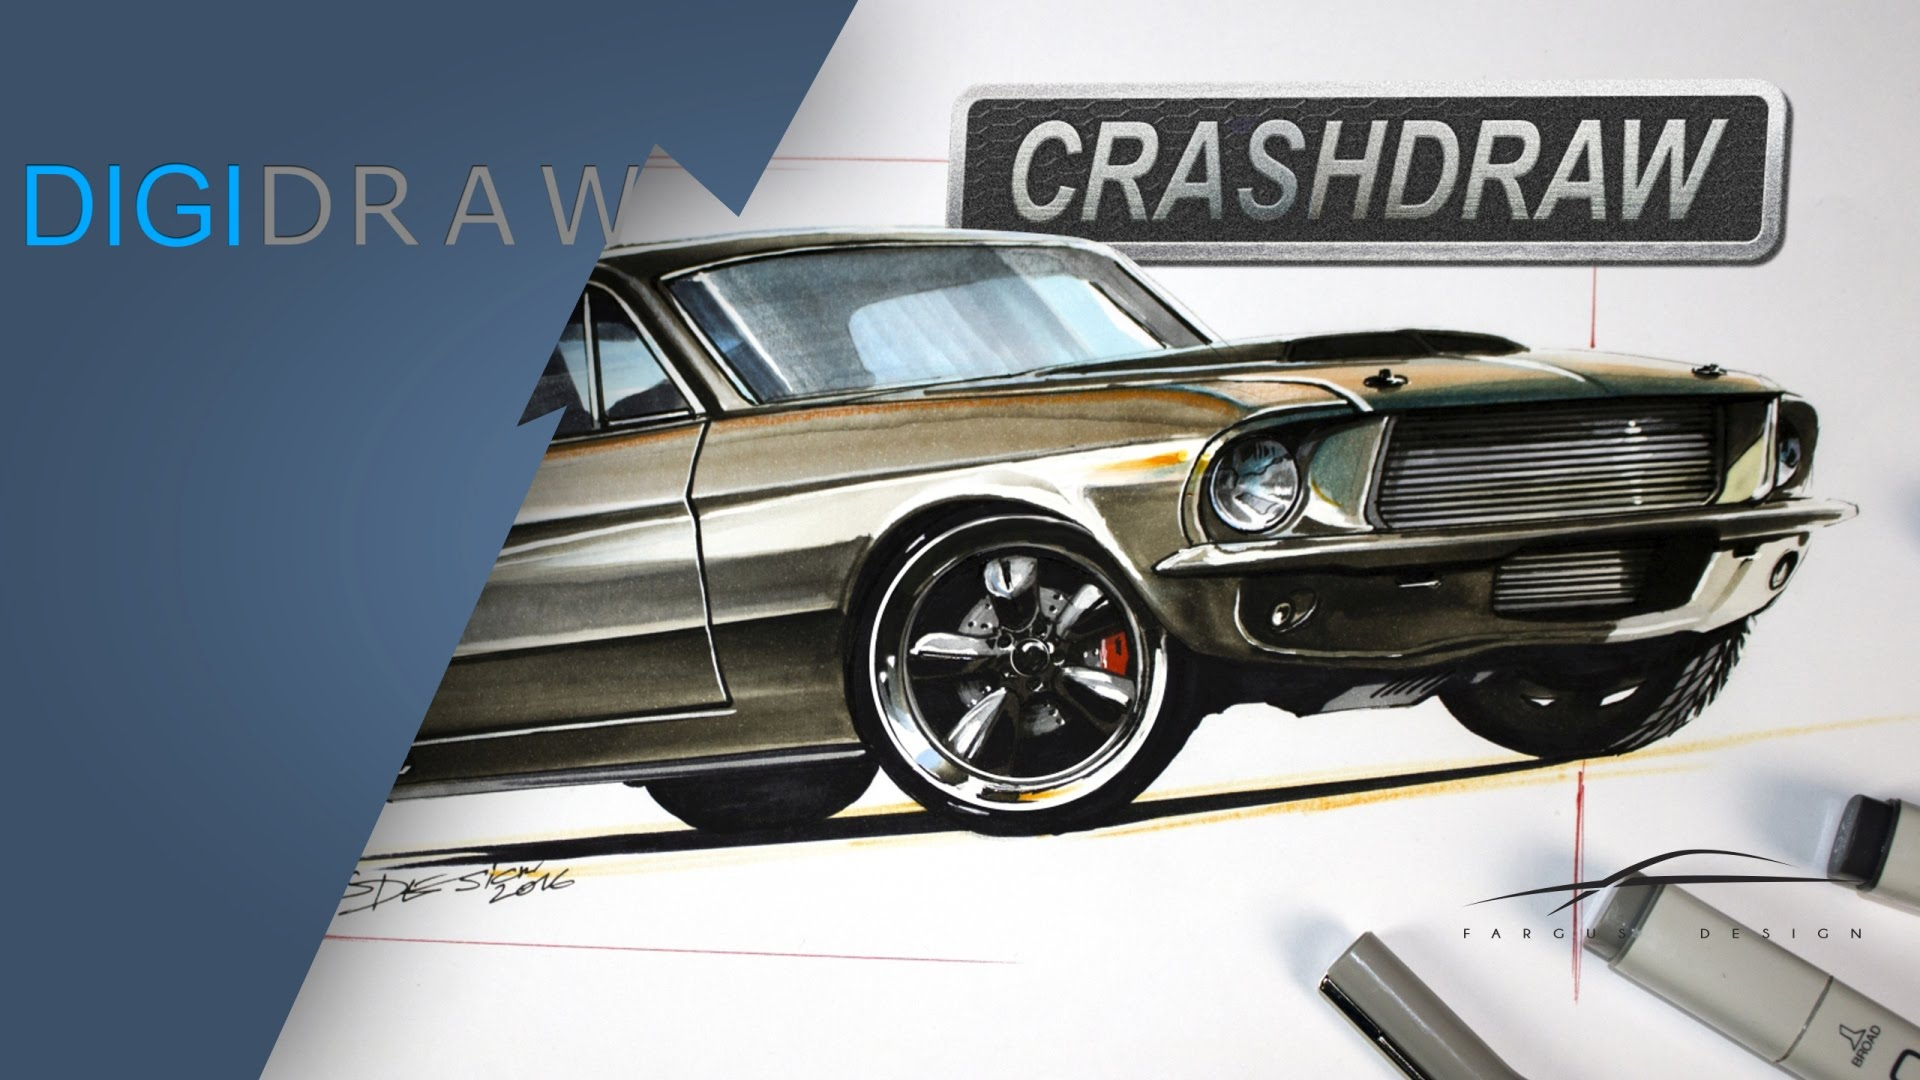 1920x1080 Ford Mustang Chip Foose Style Designsketch, Overhaulin' Style